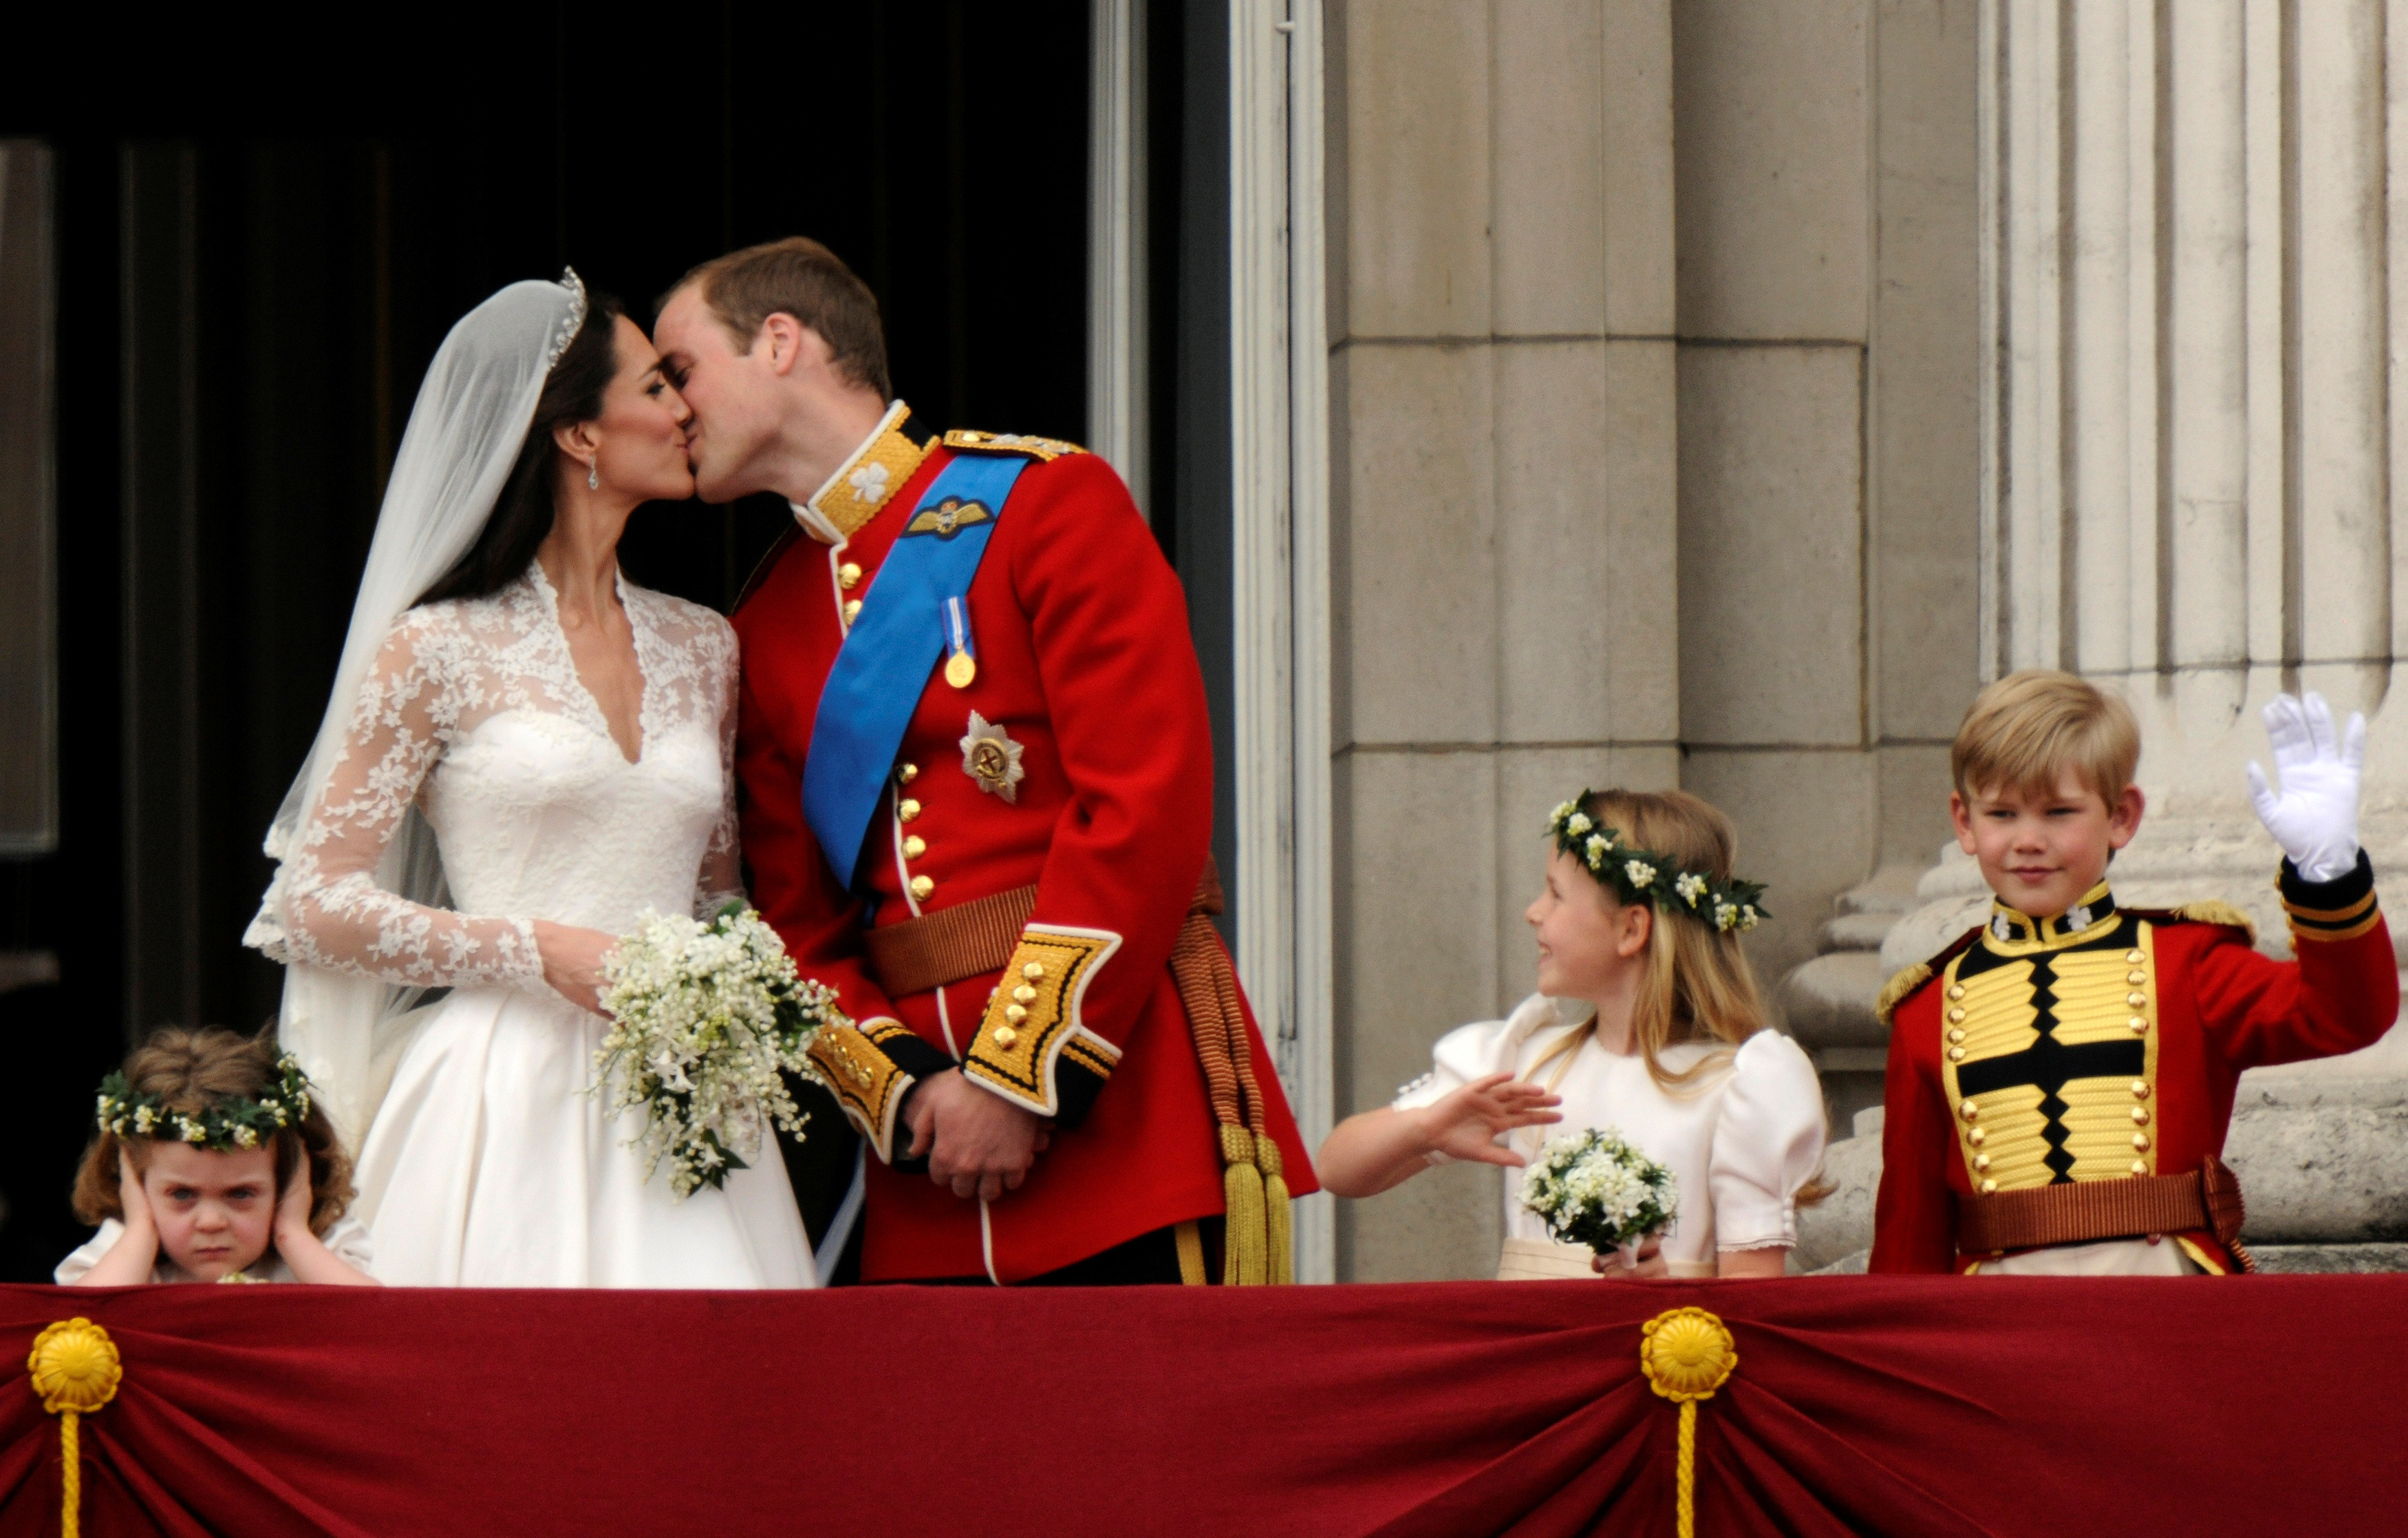 Britain's Prince William and his wife Catherine, Duchess of Cambridge, kiss on the balcony at Buckingham Palace, watched by bridemaids Grace van Cutsem (L), Margarita Armstrong-Jones and pageboy Tom Pettifer, after their wedding in Westminster Abbey in London, Britain, April 29, 2011